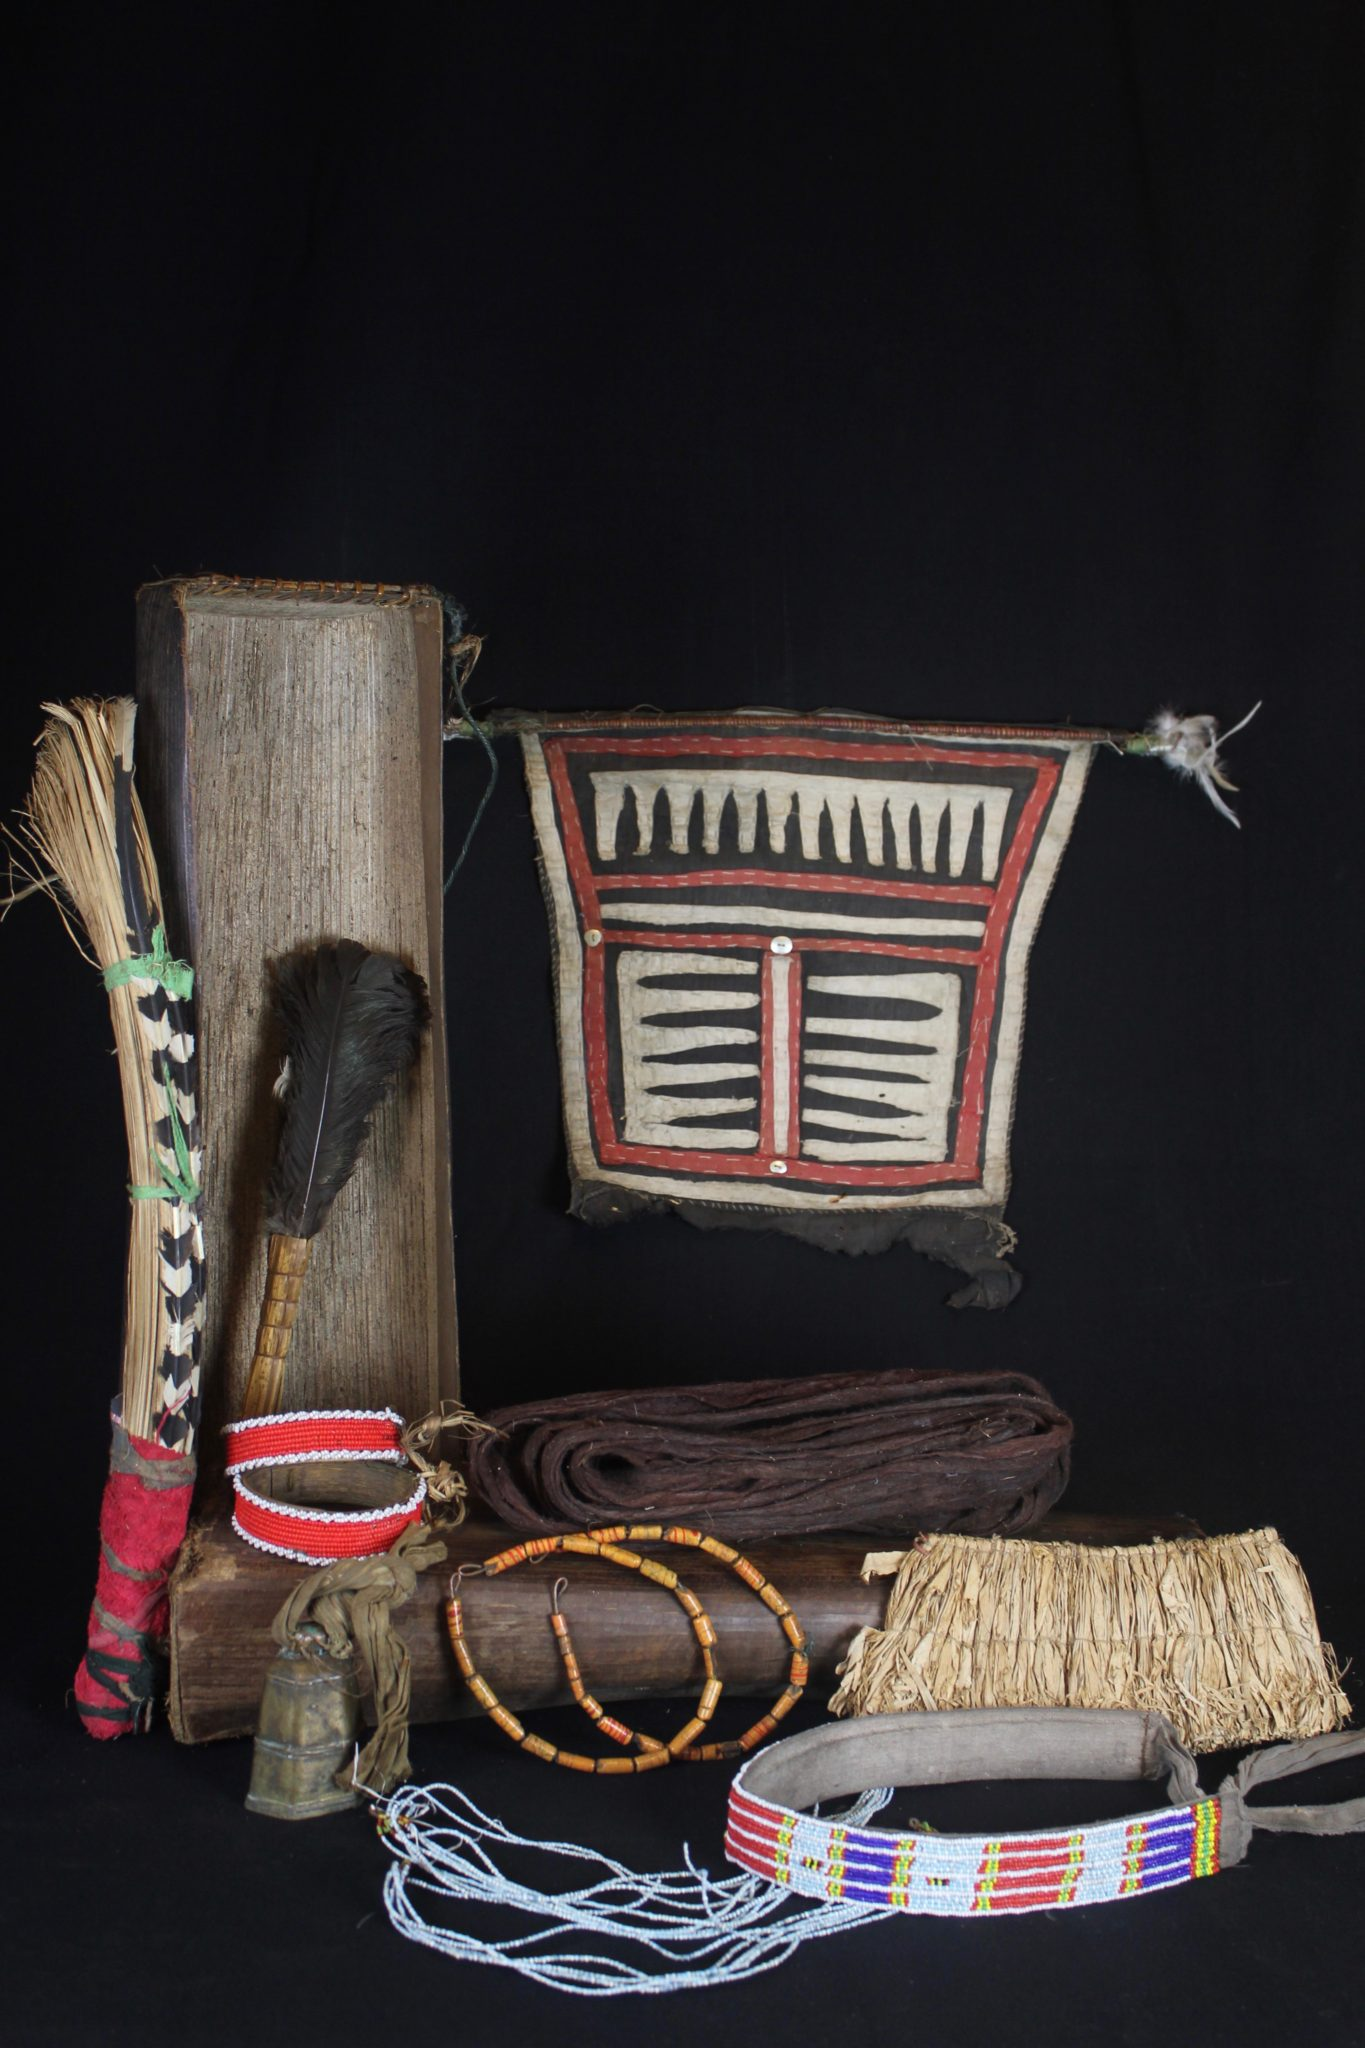 """Shaman Kit Box Contents, Mentawai Islands, Sumatra, Indonesia, Mentawai tribe Early to mid 20th c, Case: sago palm leaf box, braided rattan, Raffia wand handle and headband, feathers, European glass trade beads, cotton trade cloth, wood, bronze bell. Contents: costume (loincloth, jewelry, head gear) and wands. All items have a specific purpose - example: the beaded headband acts like antenna attracting spirits the shaman needs to contact. 5 ½"""" x 7 ½"""" x 30 ½"""" $3600."""